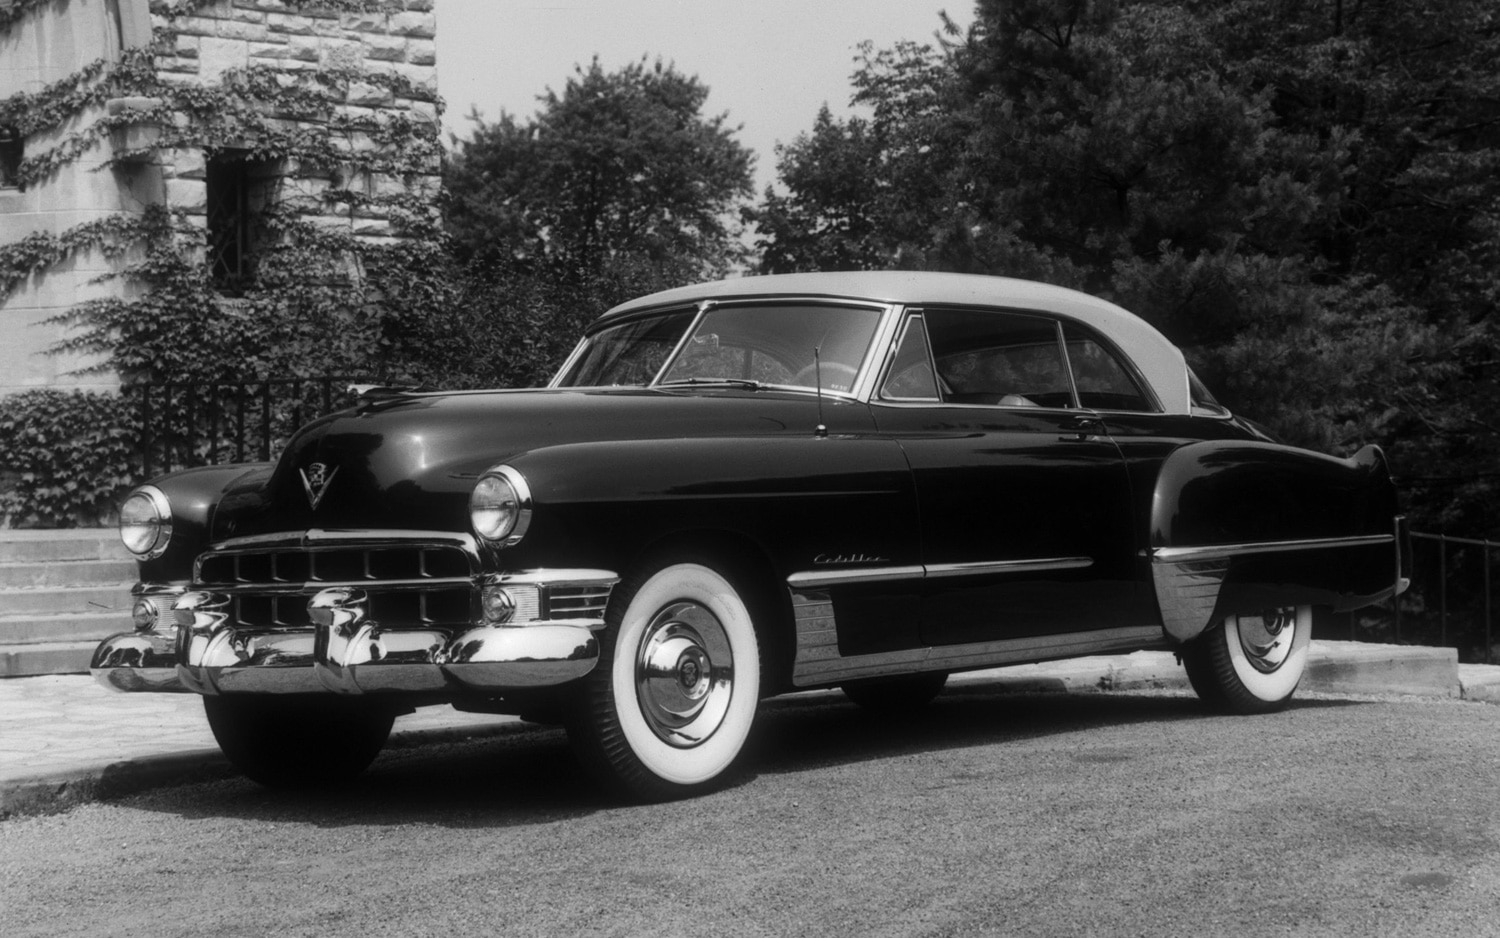 Amelia Island Concours to Feature Classic Cadillac Concepts Photo